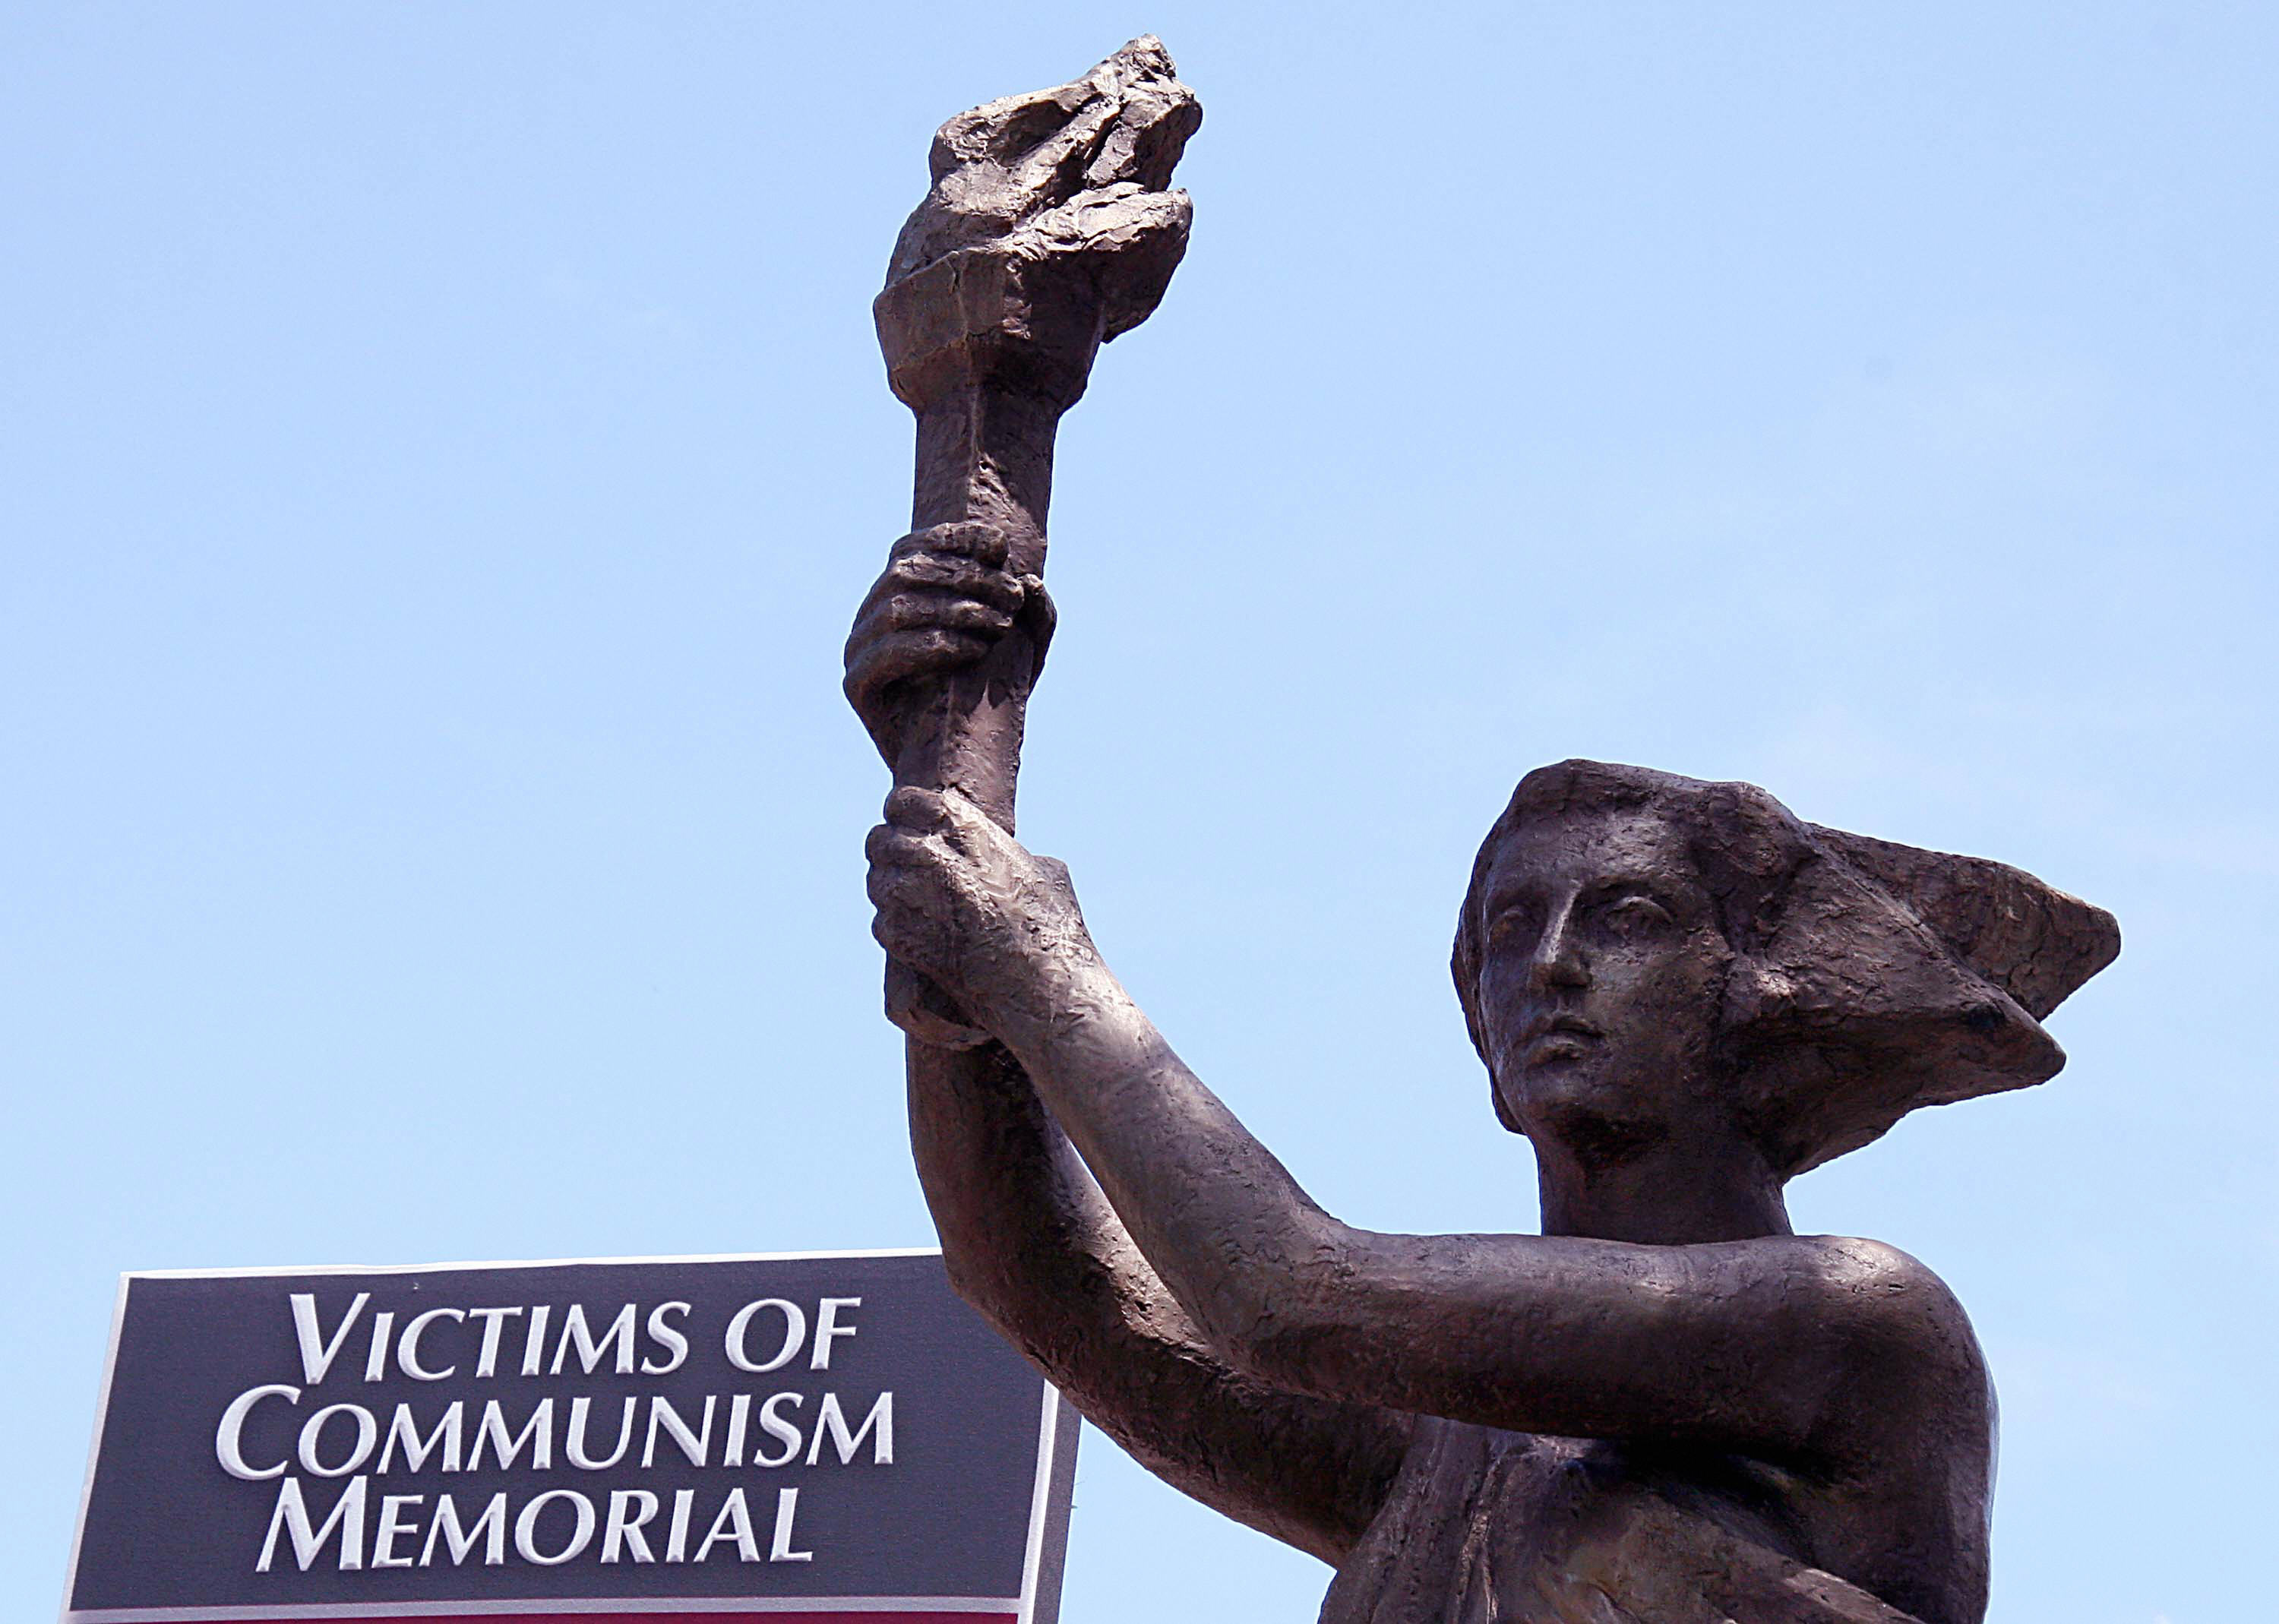 The Victims of Communism Memorial in Was